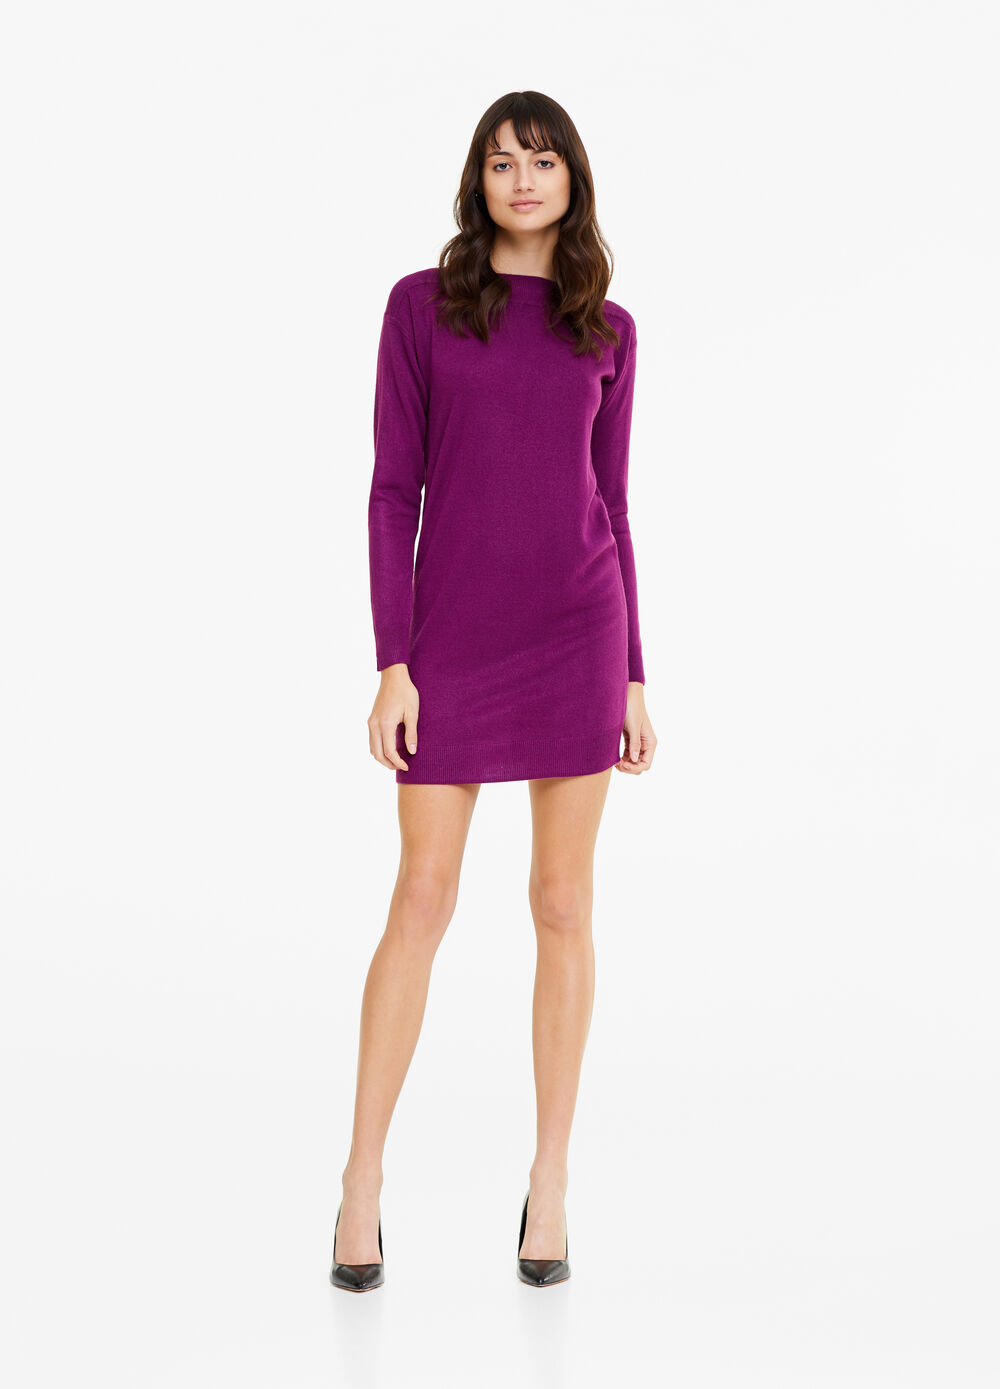 Solid colour dress with knitted design